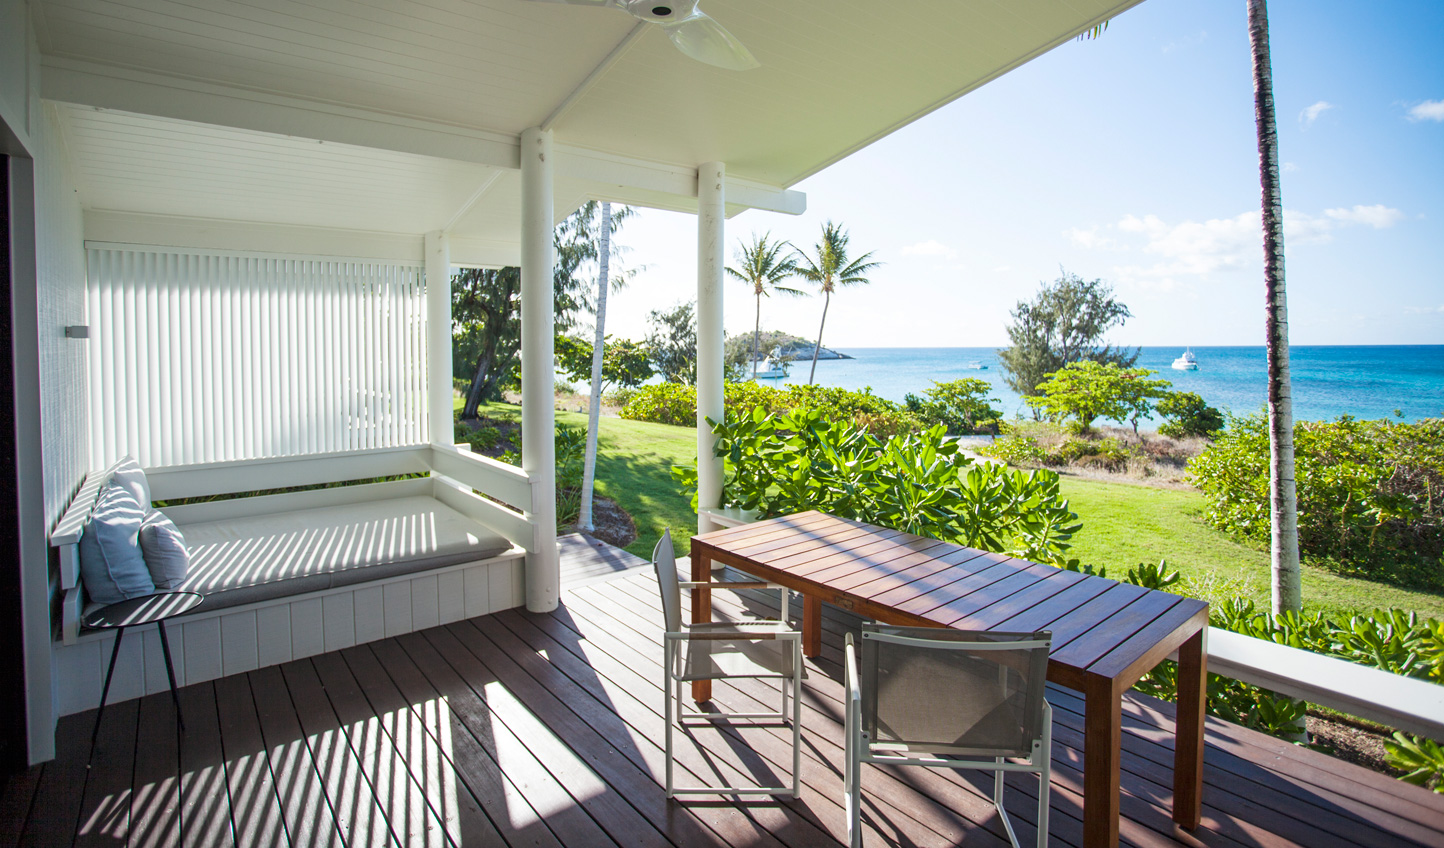 Relax out on your beachfront deck